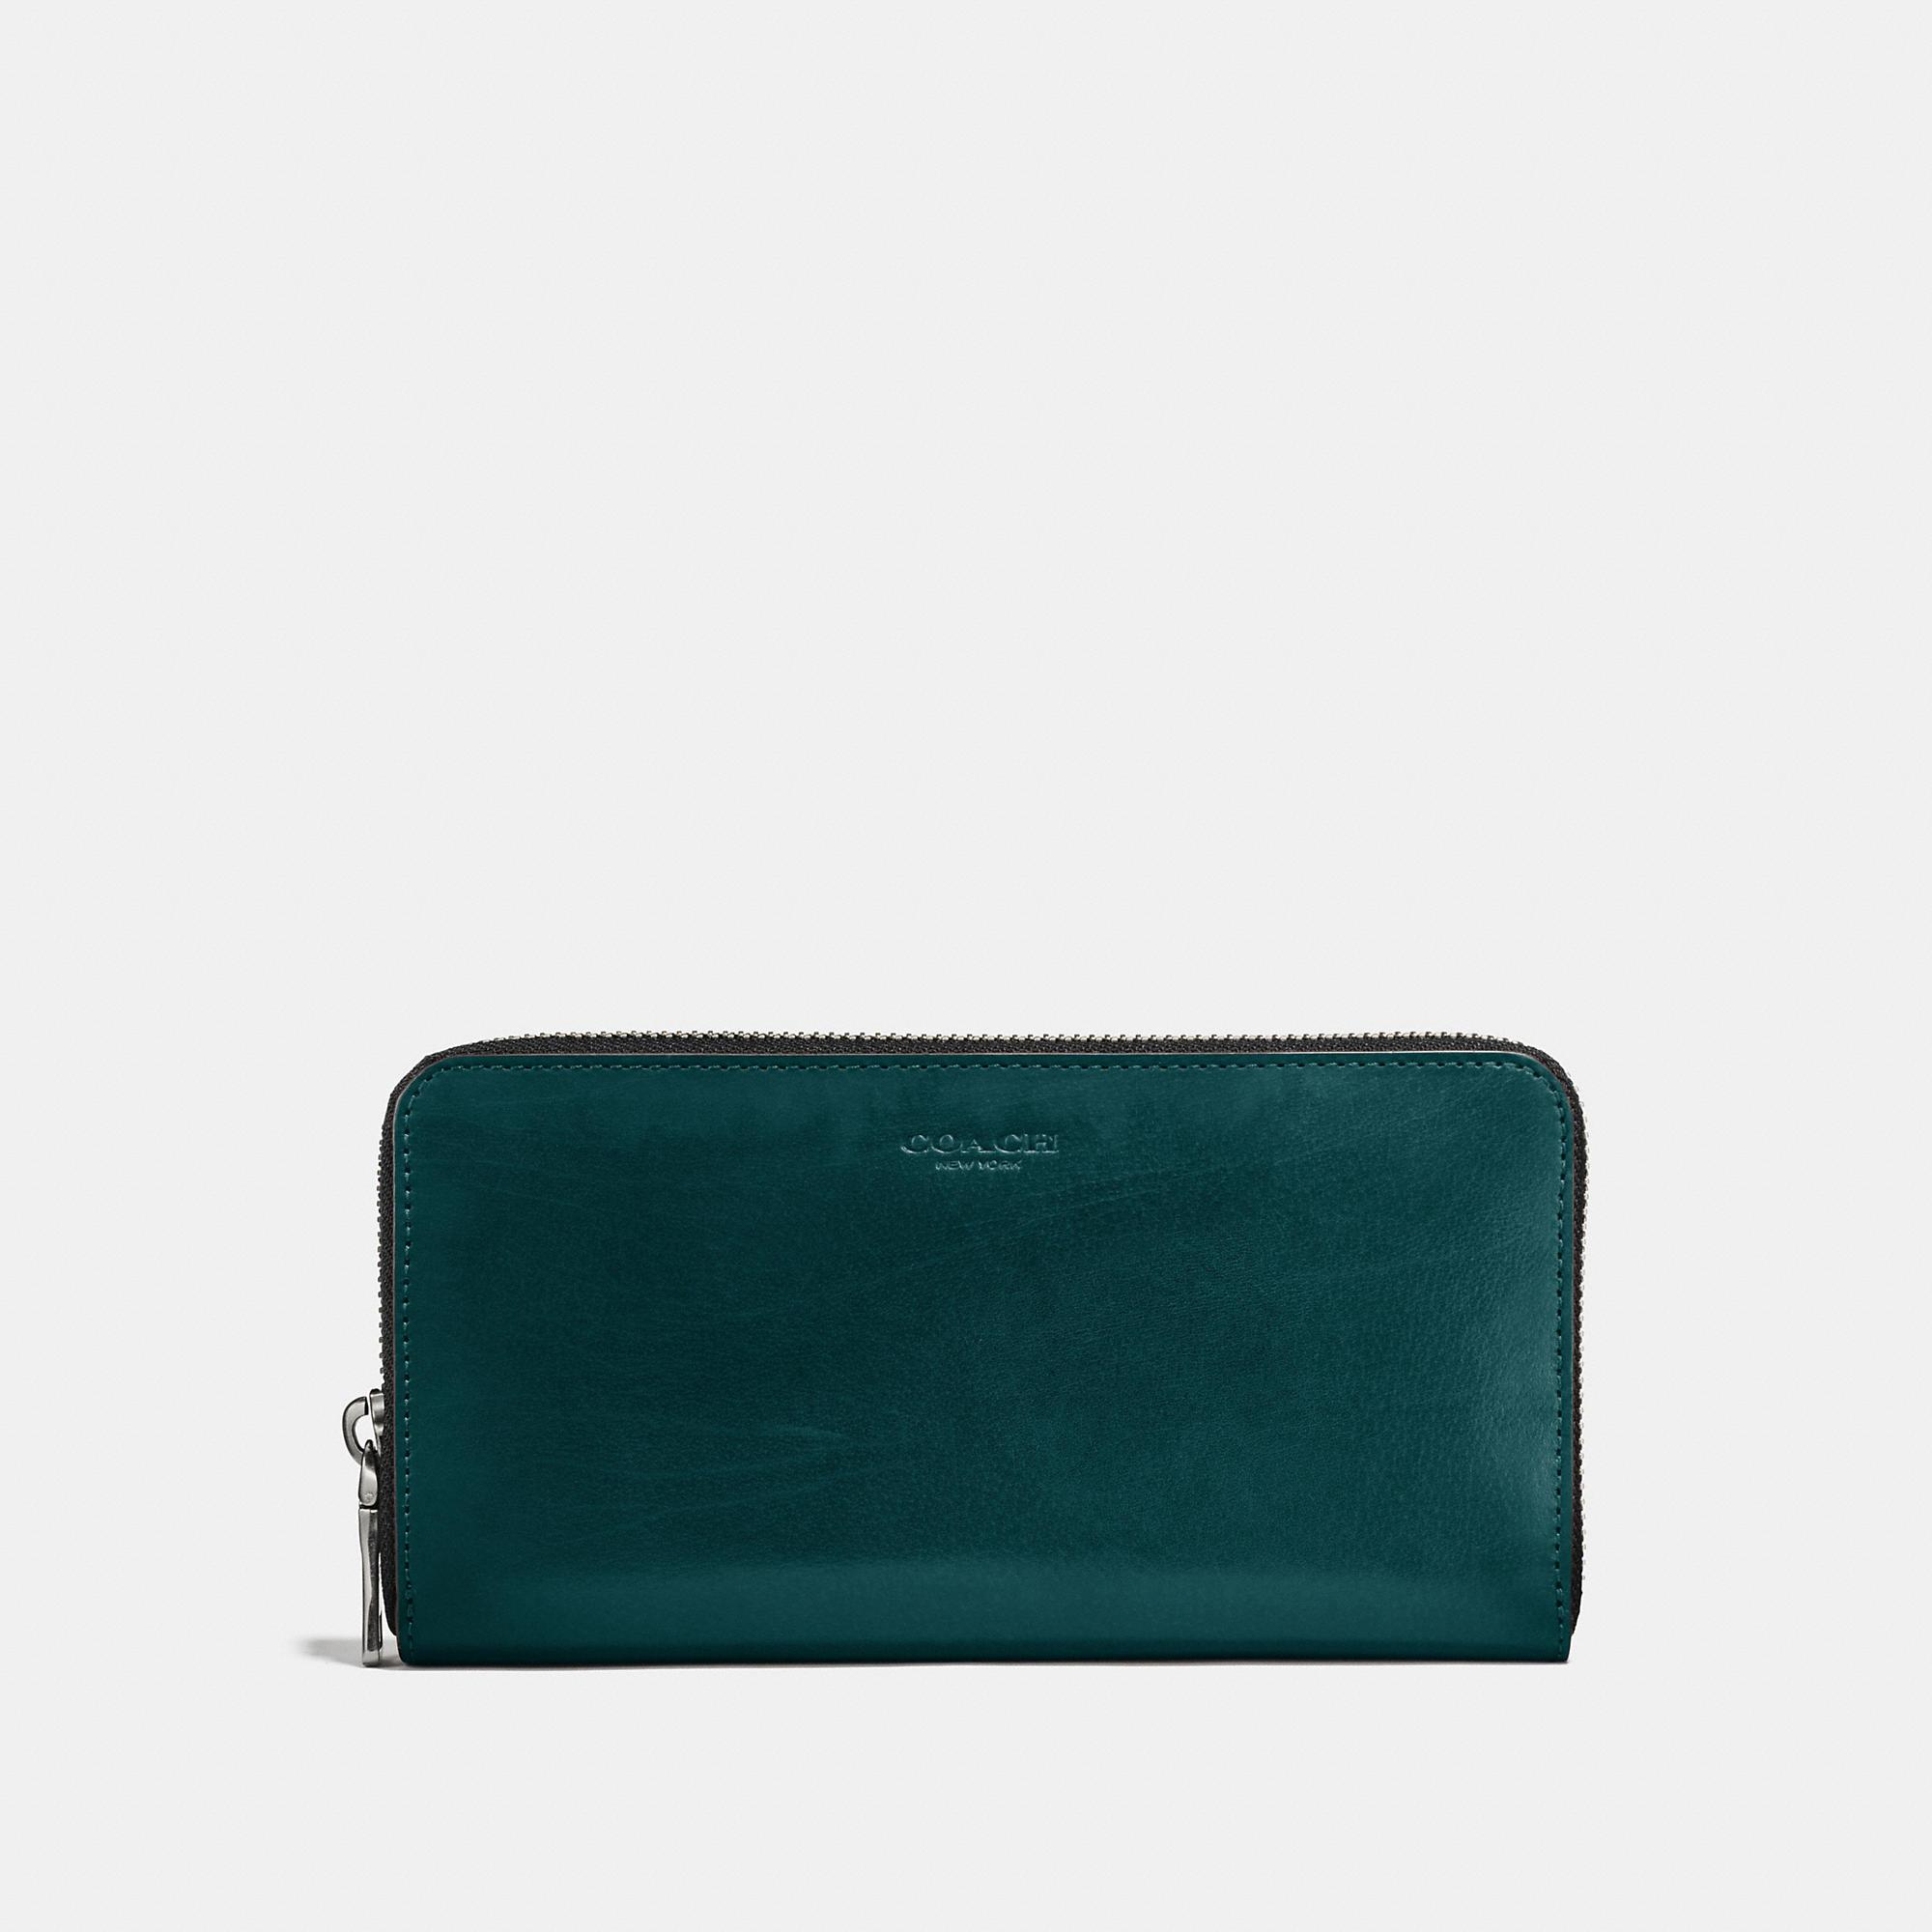 Coach Accordion Wallet In Forest